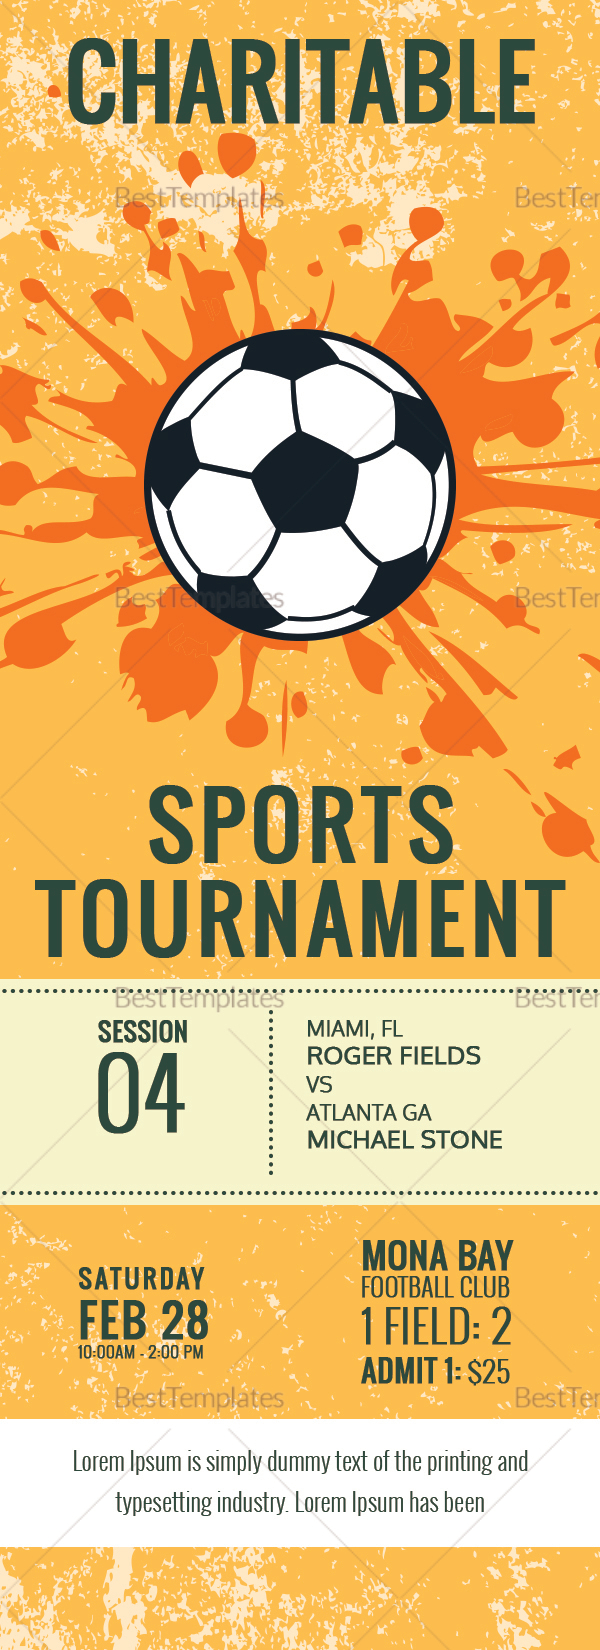 Football Tournament Ticket Design Template